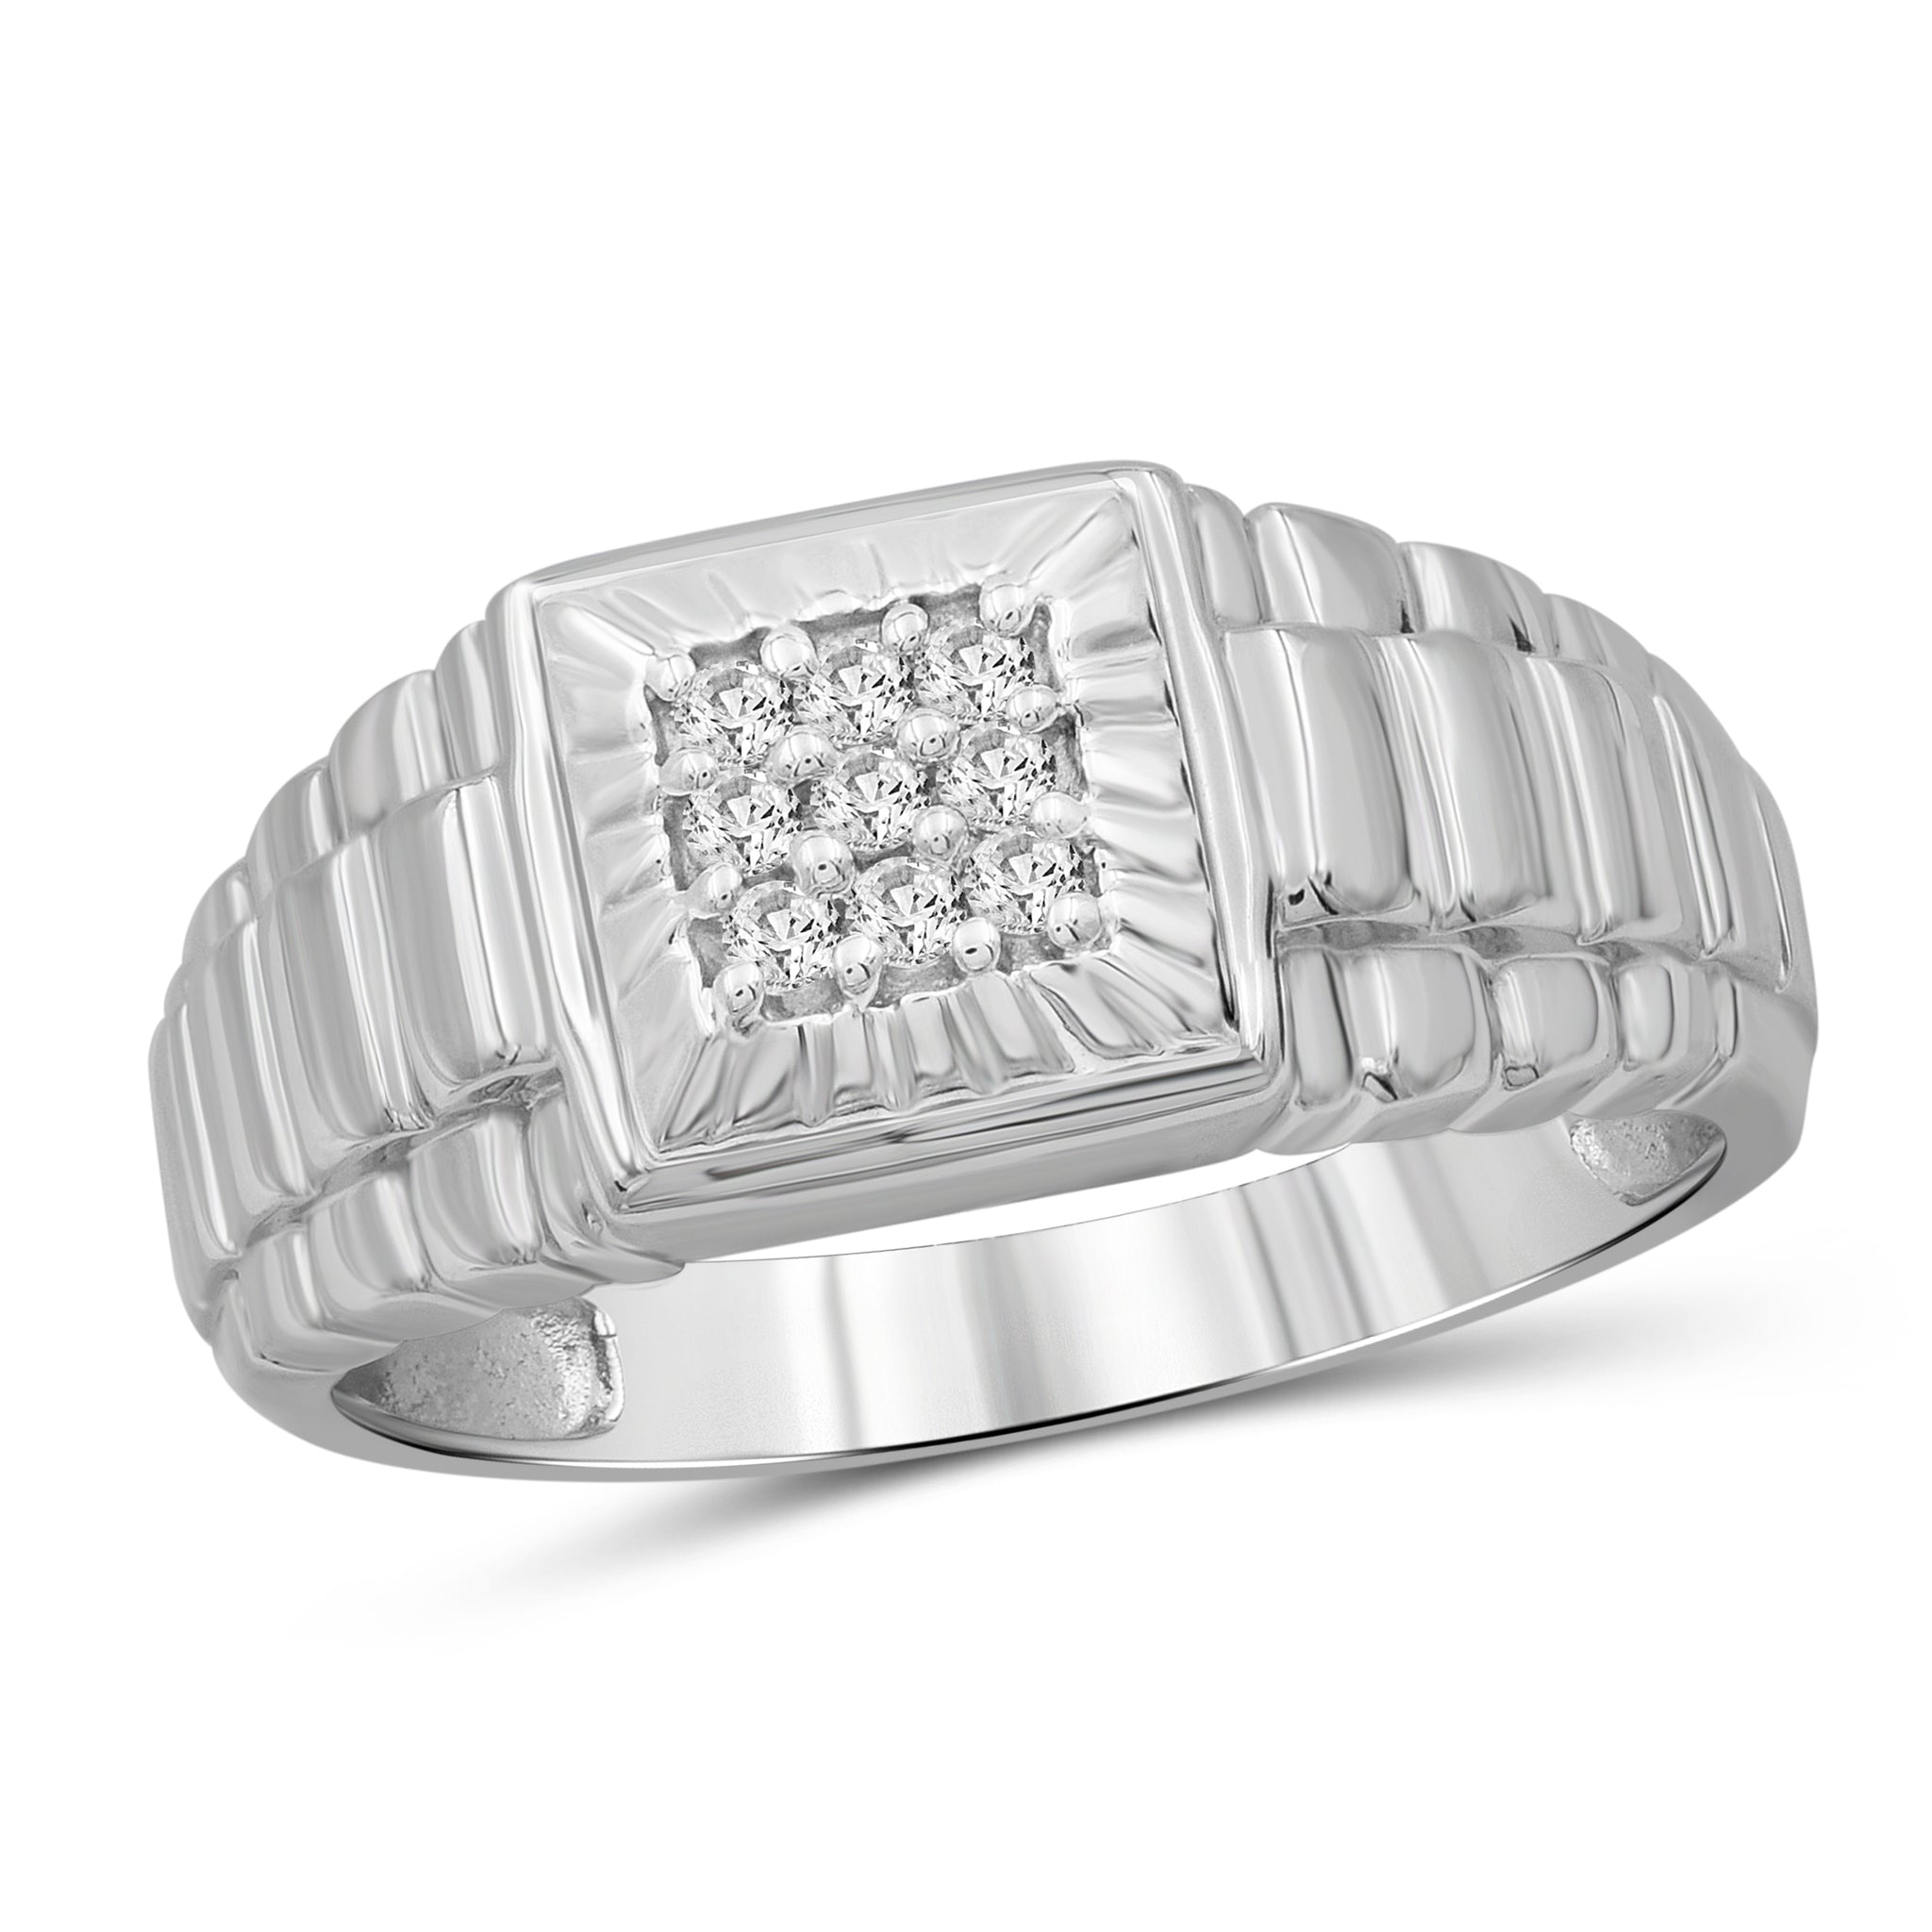 Jewelnova 1/7 Carat T.W. White Diamond 10k White Gold Men's Ring